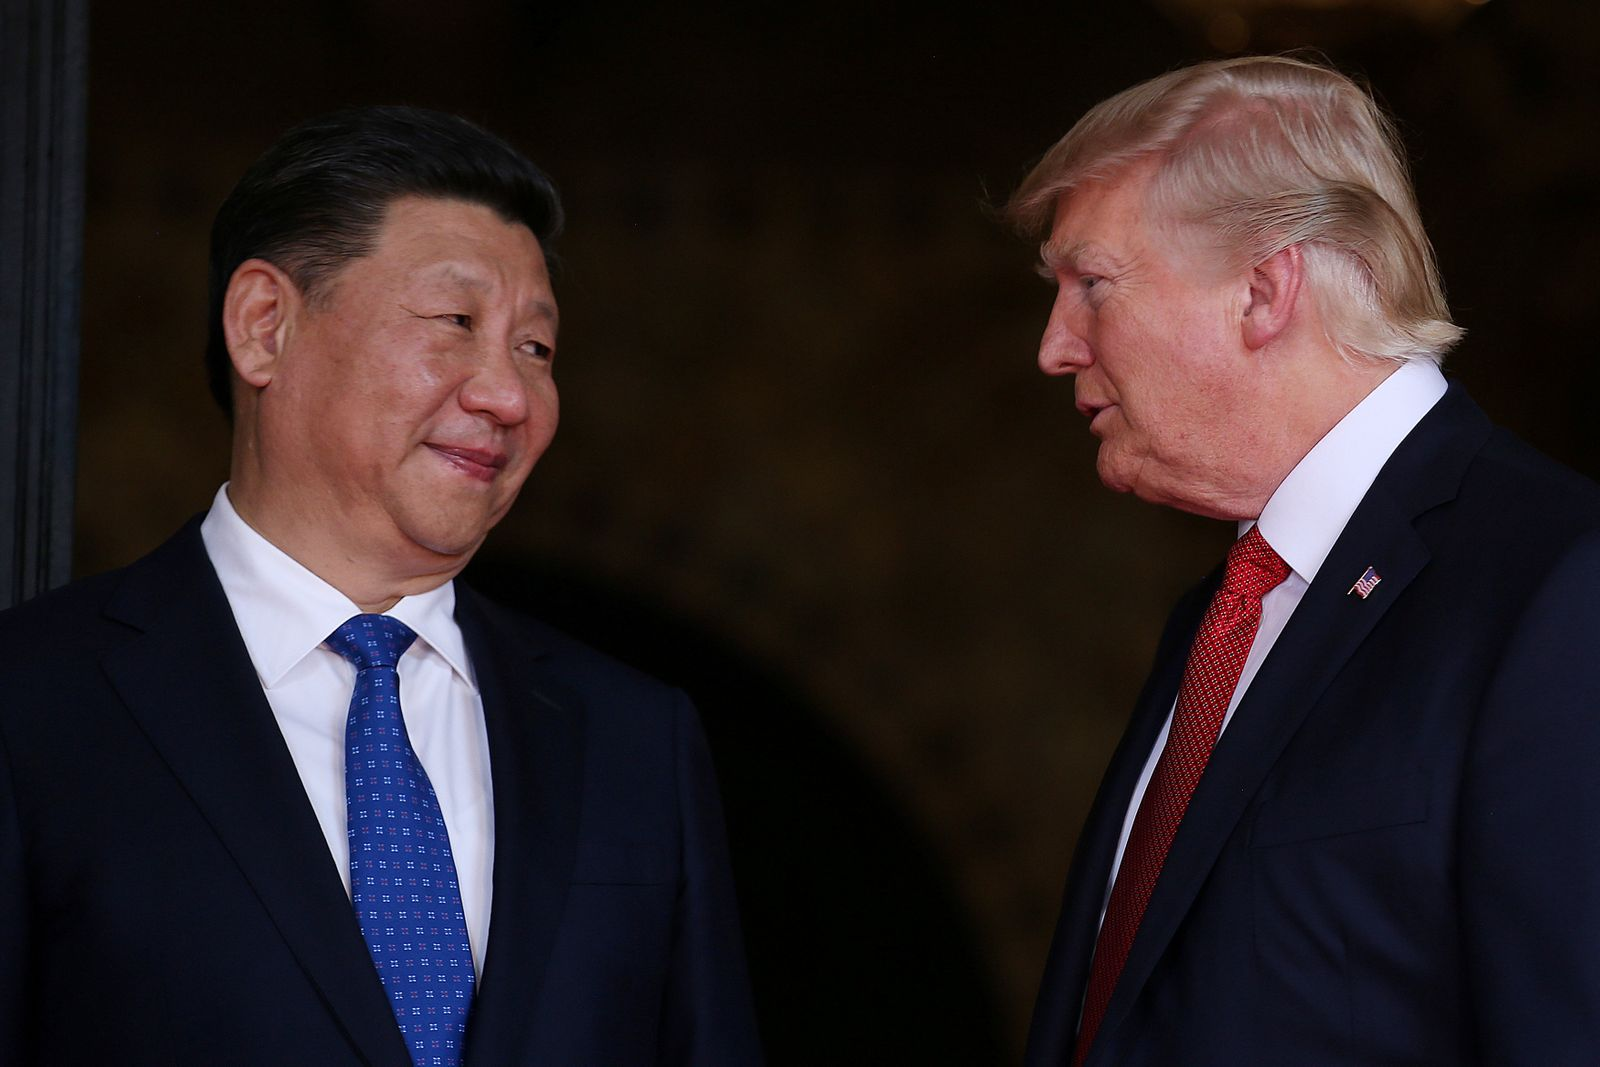 FILE PHOTO: U.S. President Donald Trump welcomes Chinese President Xi Jinping at Mar-a-Lago state in Palm Beach, Florida, U.S.